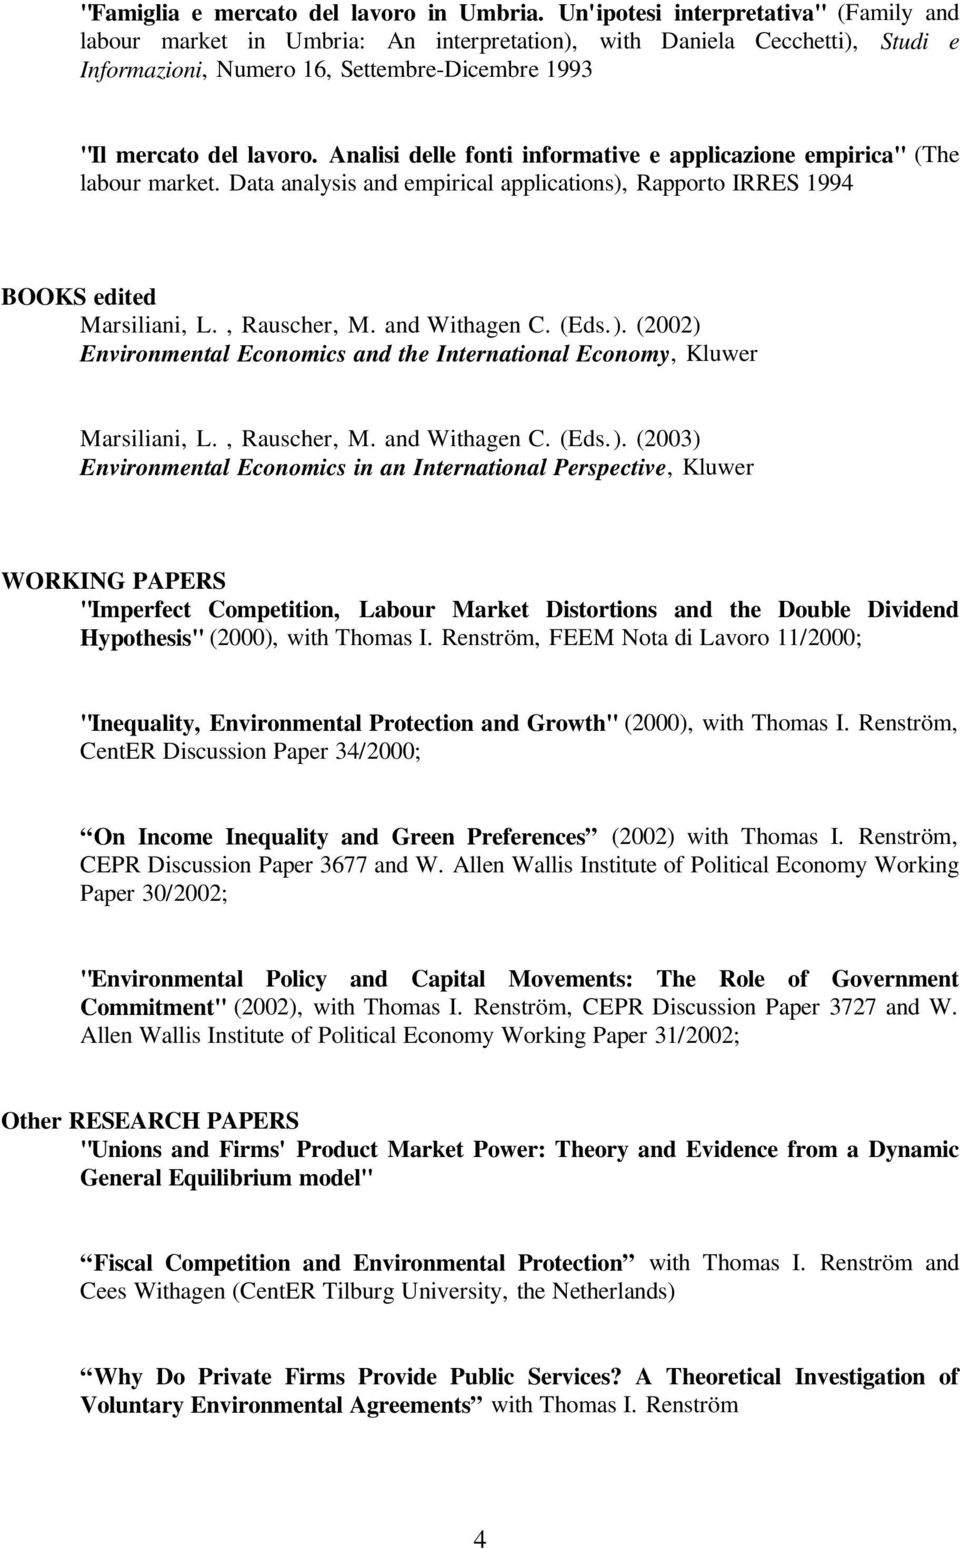 "Analisi delle fonti informative e applicazione empirica"" (The labour market. Data analysis and empirical applications), Rapporto IRRES 1994 BOOKS edited Marsiliani, L., Rauscher, M. and Withagen C."